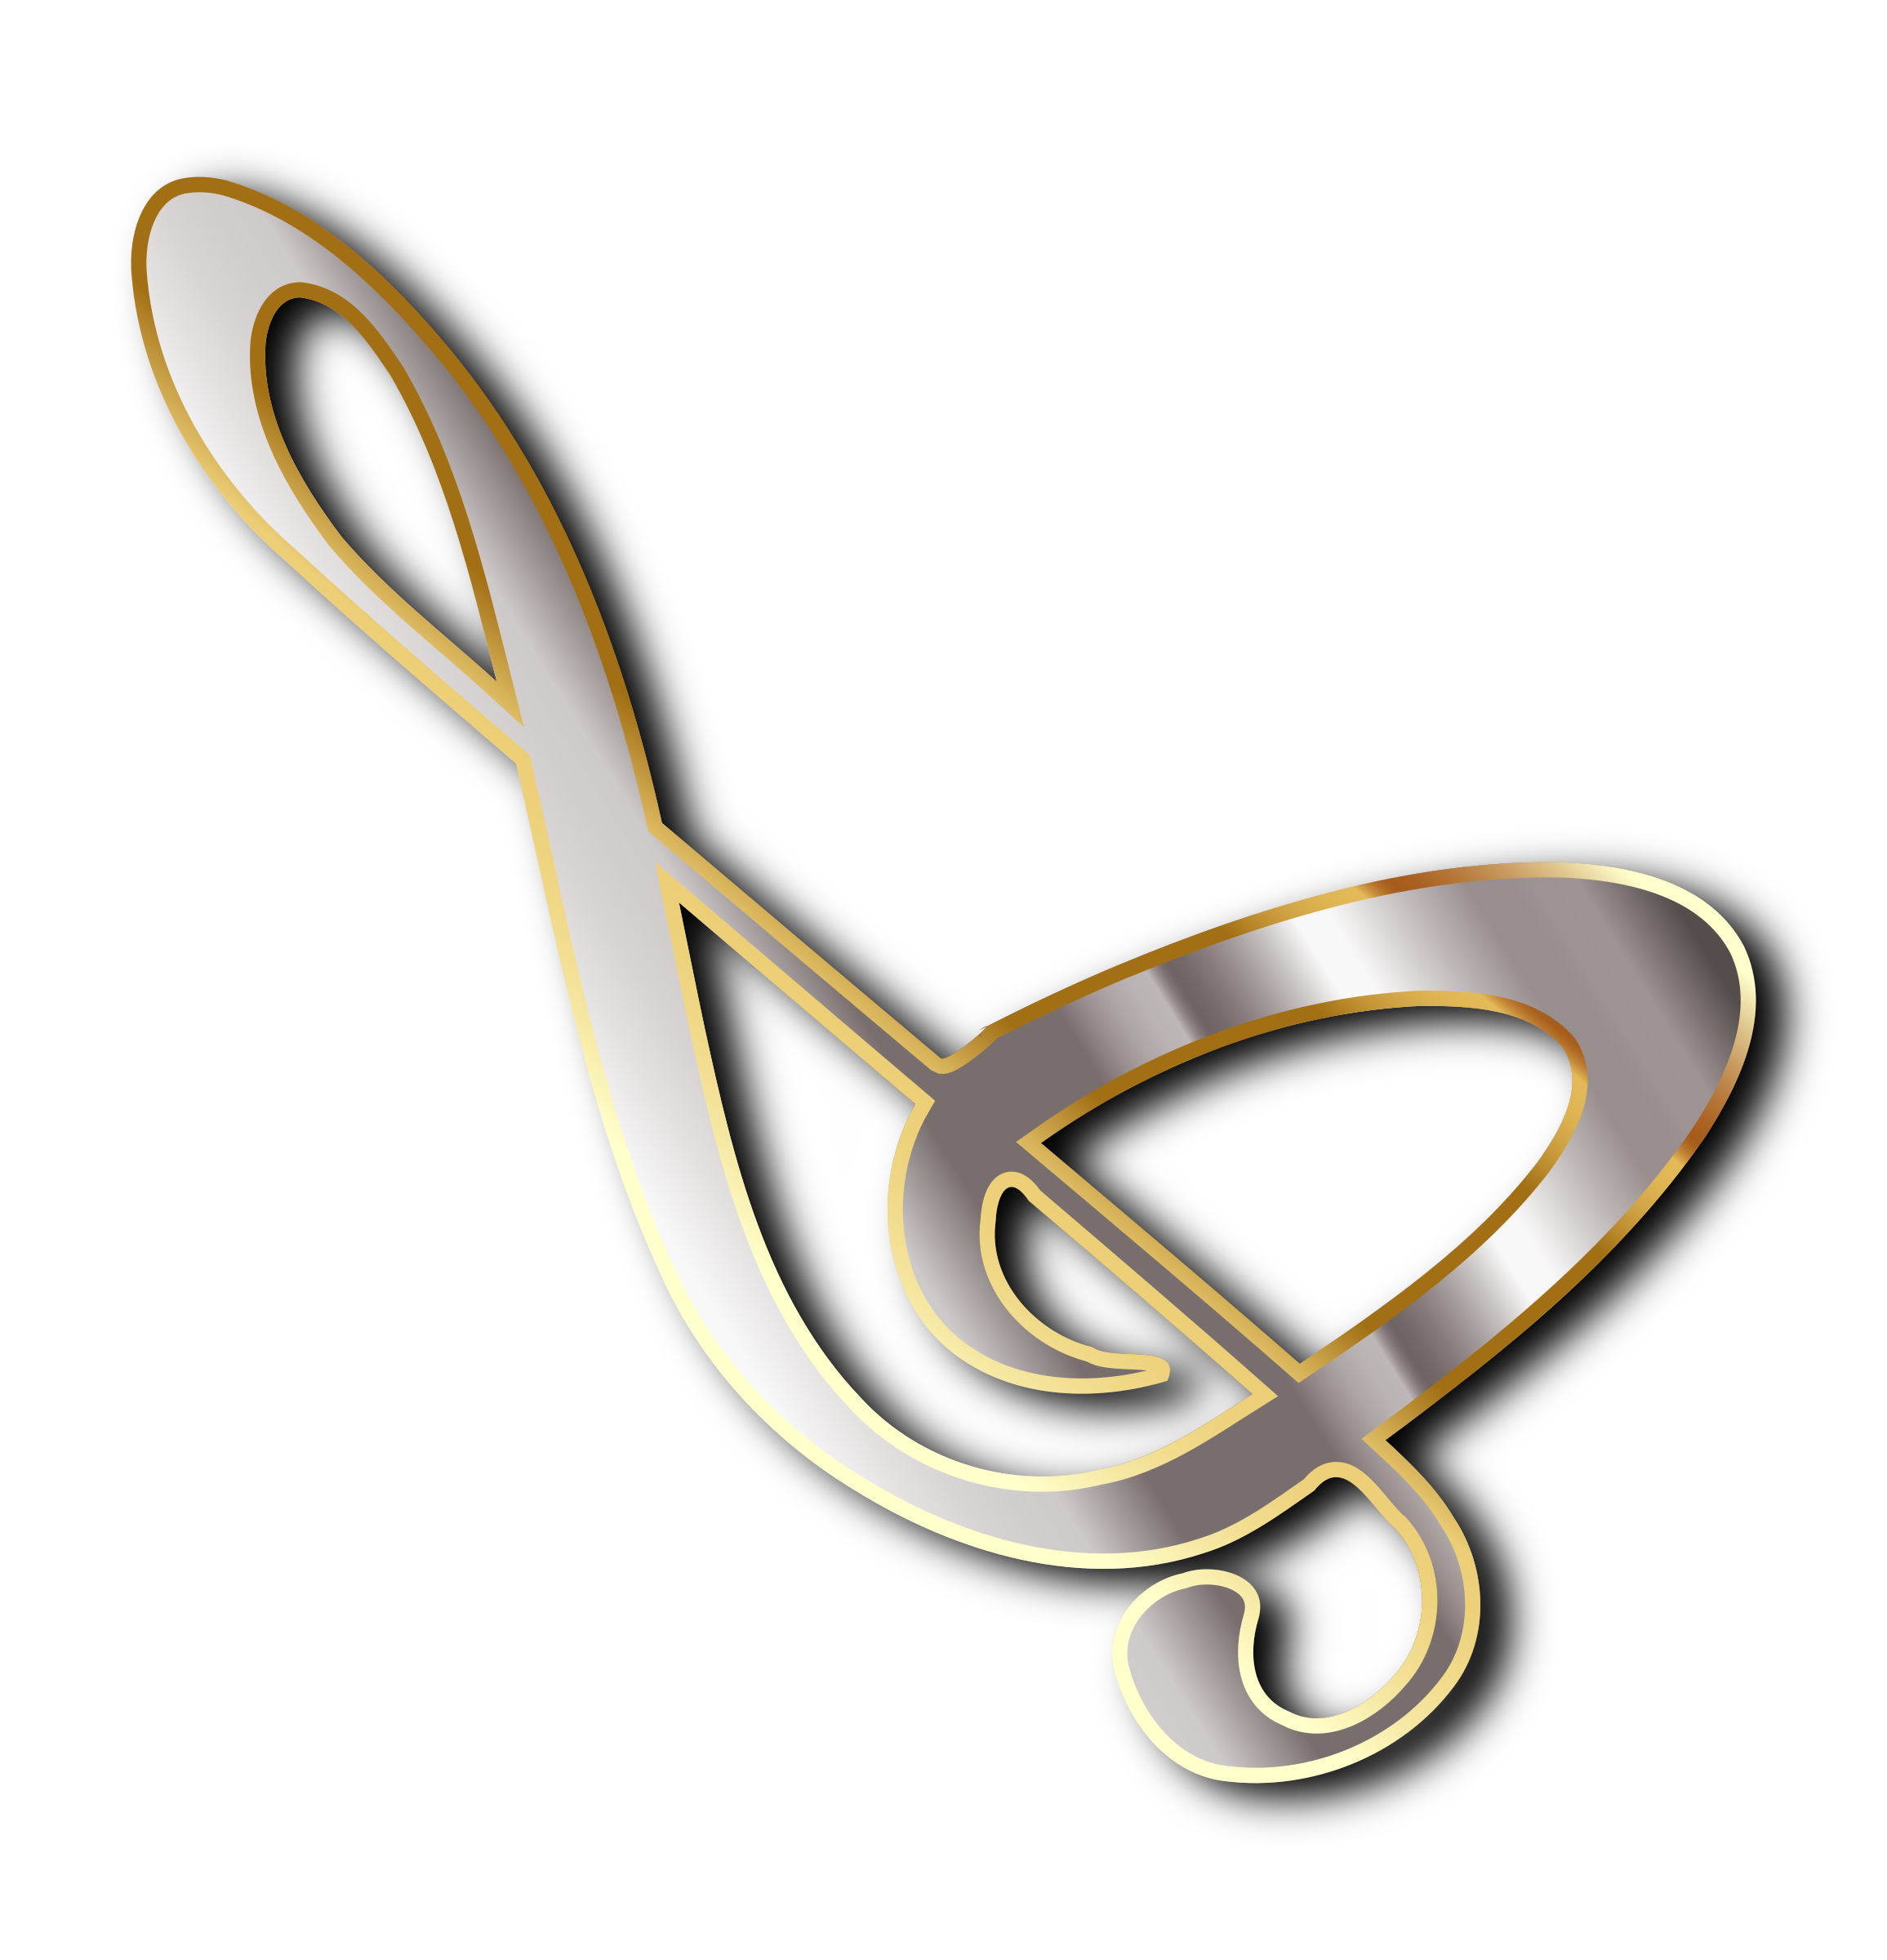 Concert Logo - Silver and Gold by gubrww2